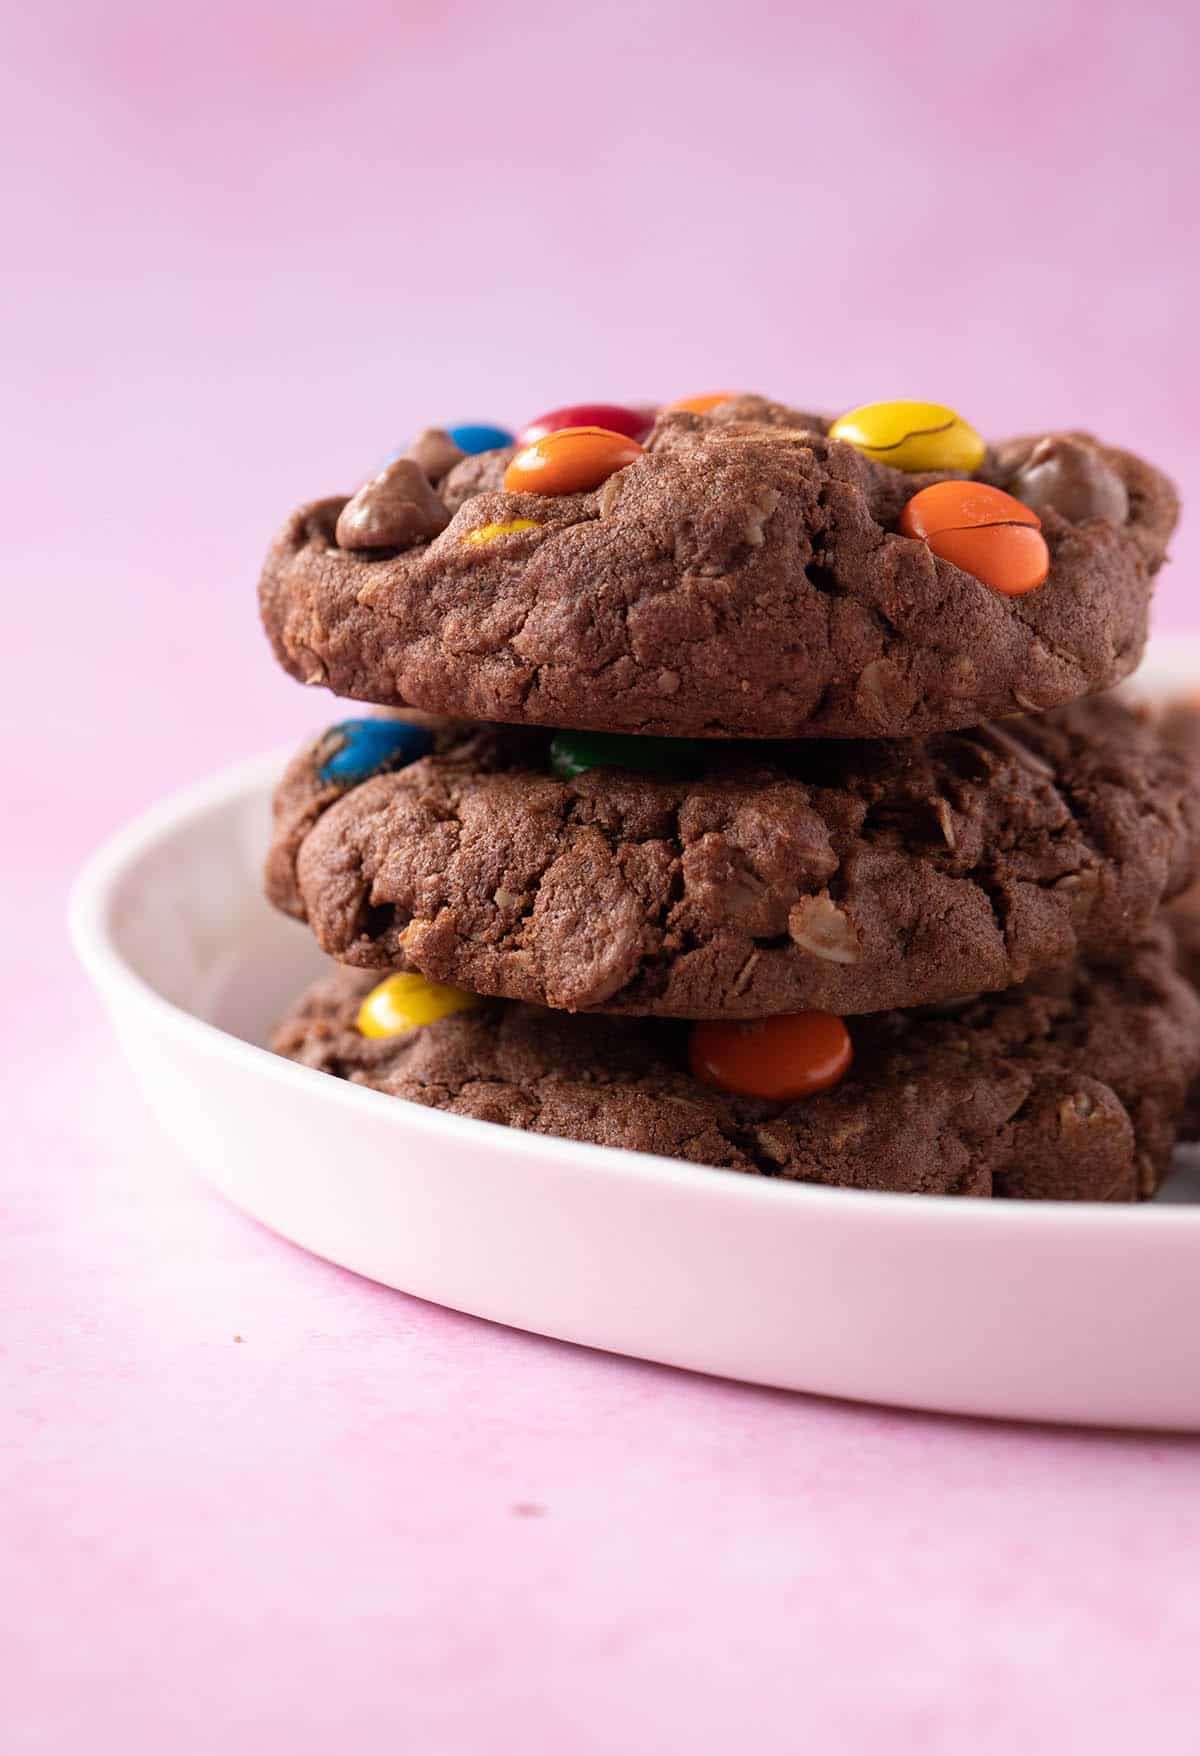 A stack of homemade Chocolate Monster Cookies on a white plate